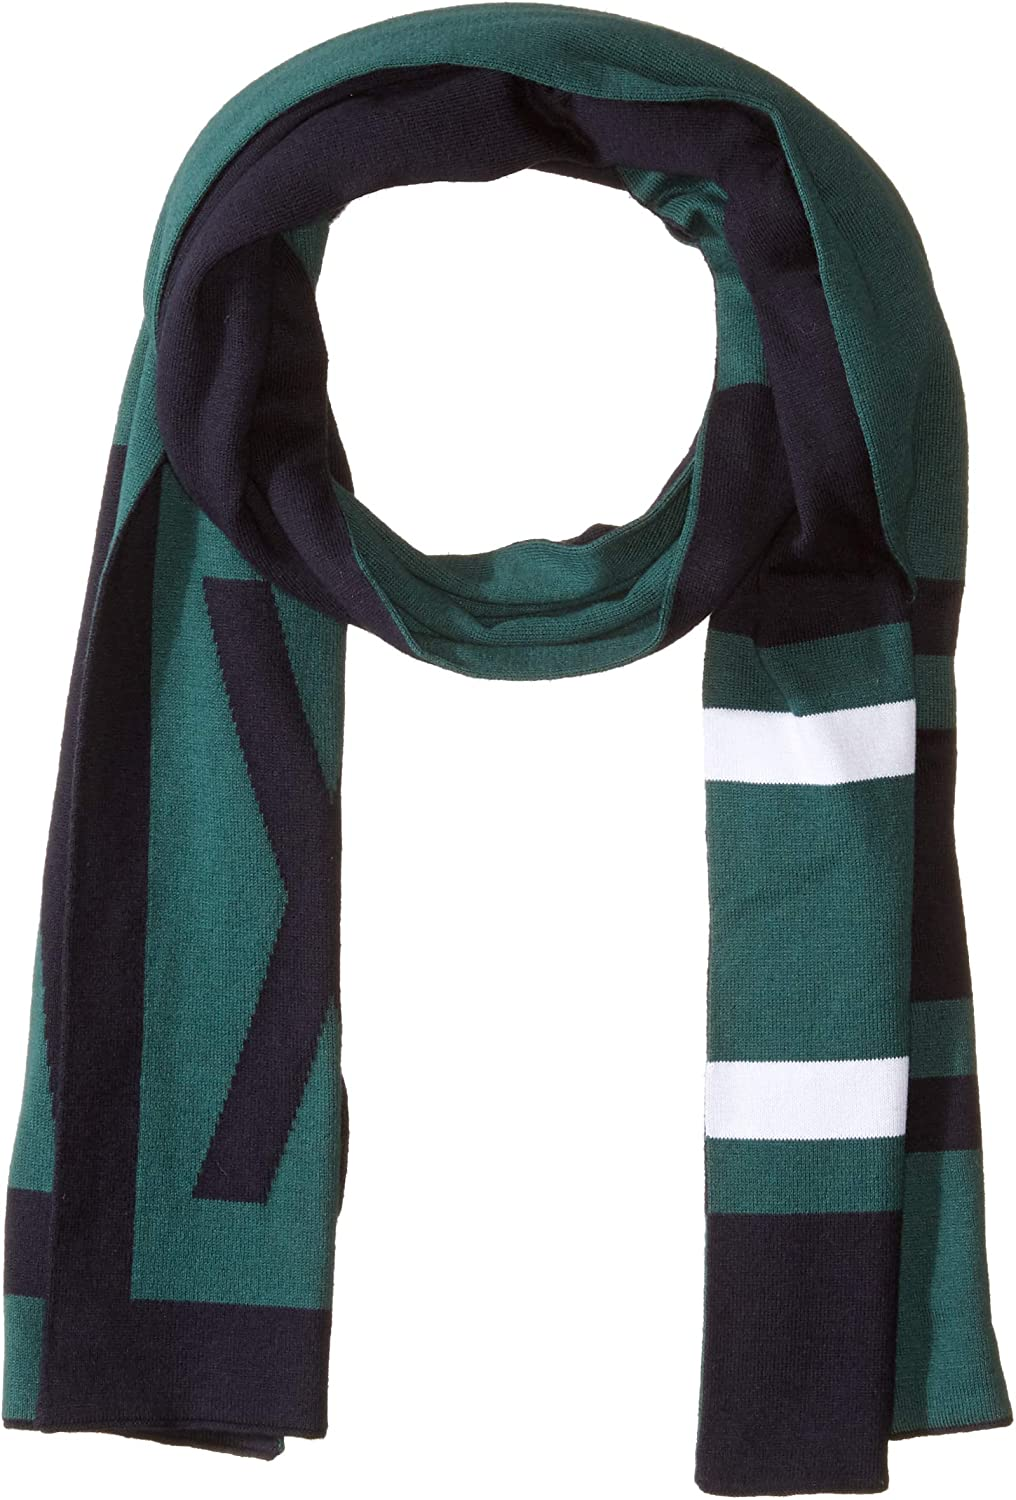 AX Armani Exchange mens Two-color Scarf With A x Logo